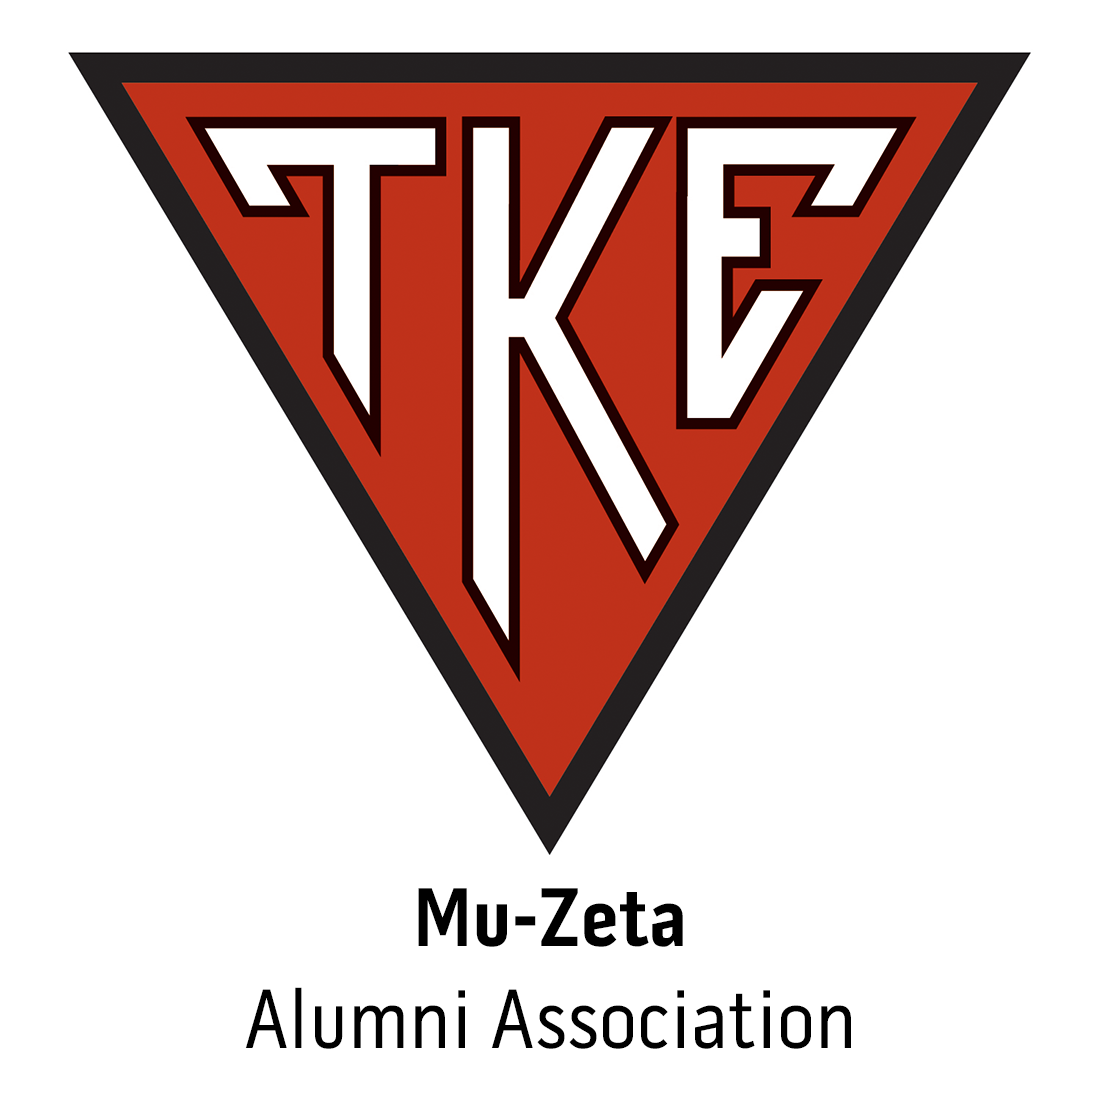 Mu-Zeta Alumni Association at Nicholls State University